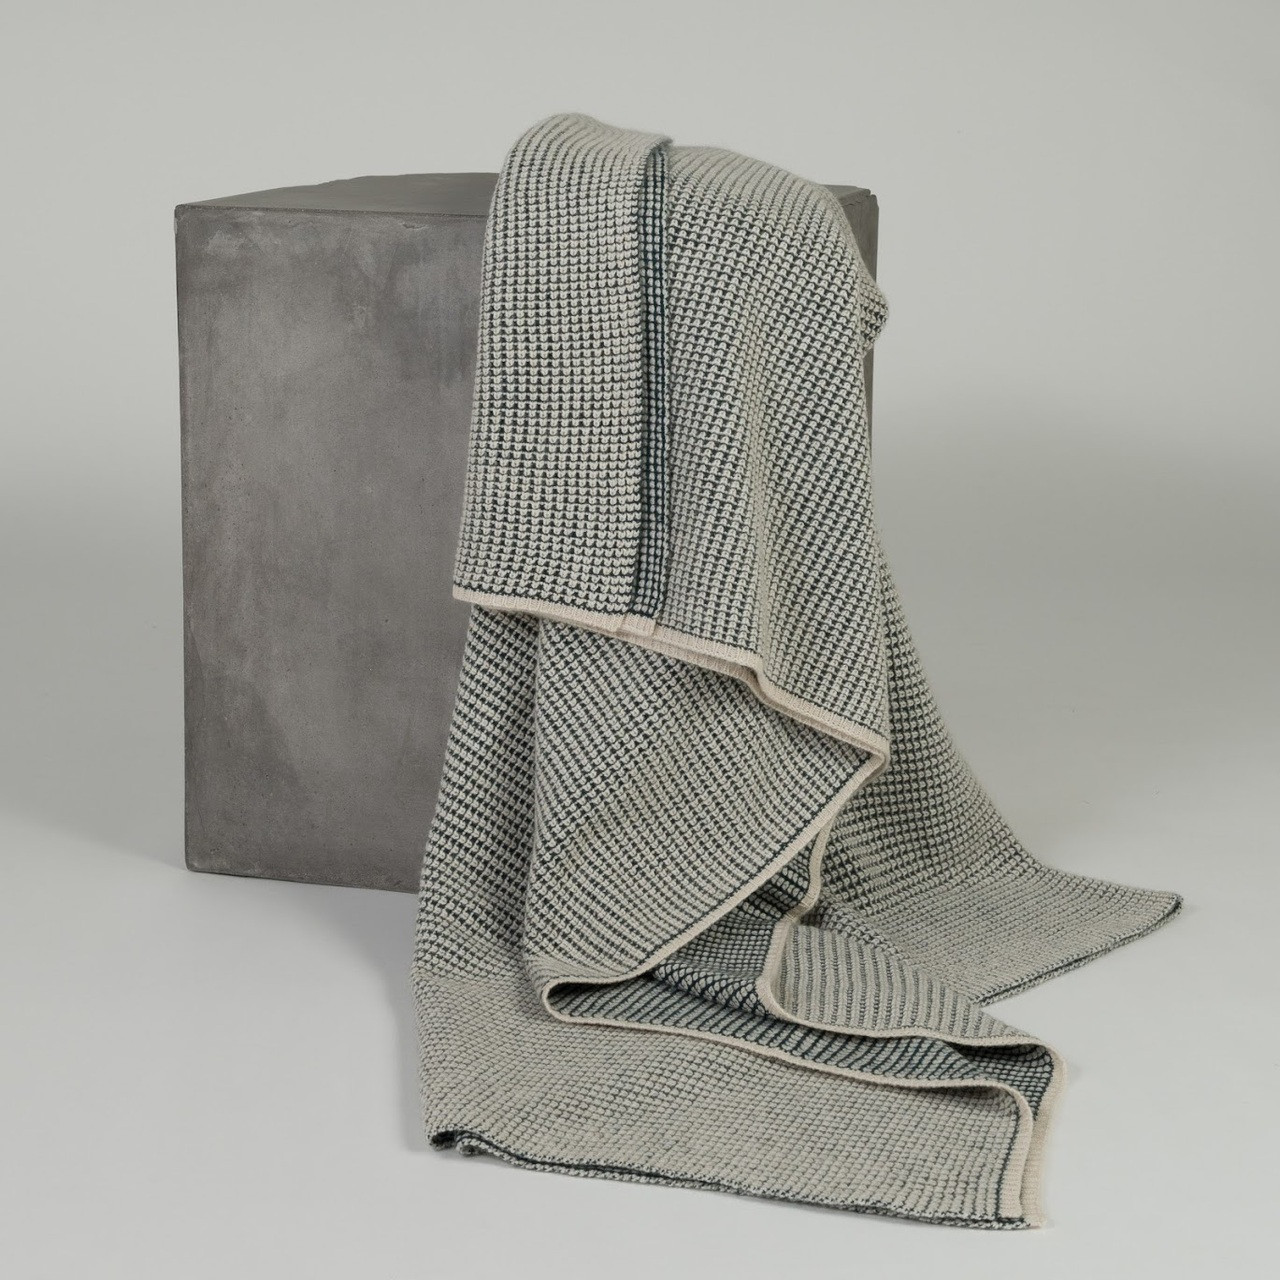 Bottle Green & Organic Brown Waffle Knit Cashmere Throw